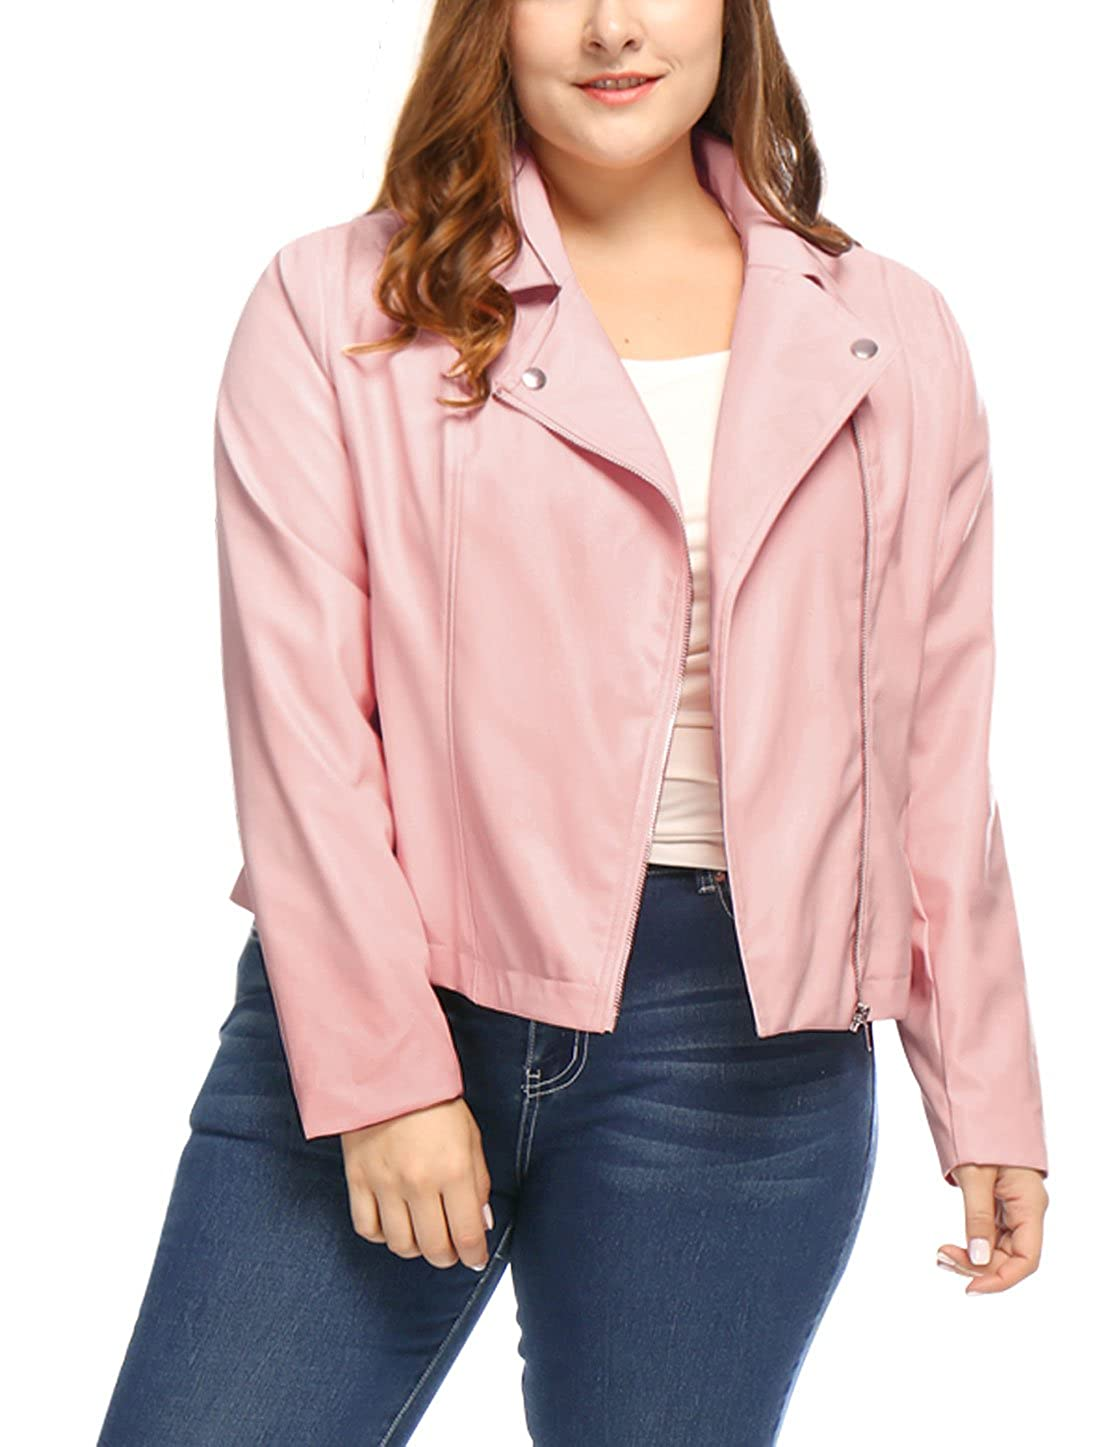 uxcell Women's Plus Size Asymmetrical Zip Front PU Leather Moto Jacket 1X Pink a16101400ux0239